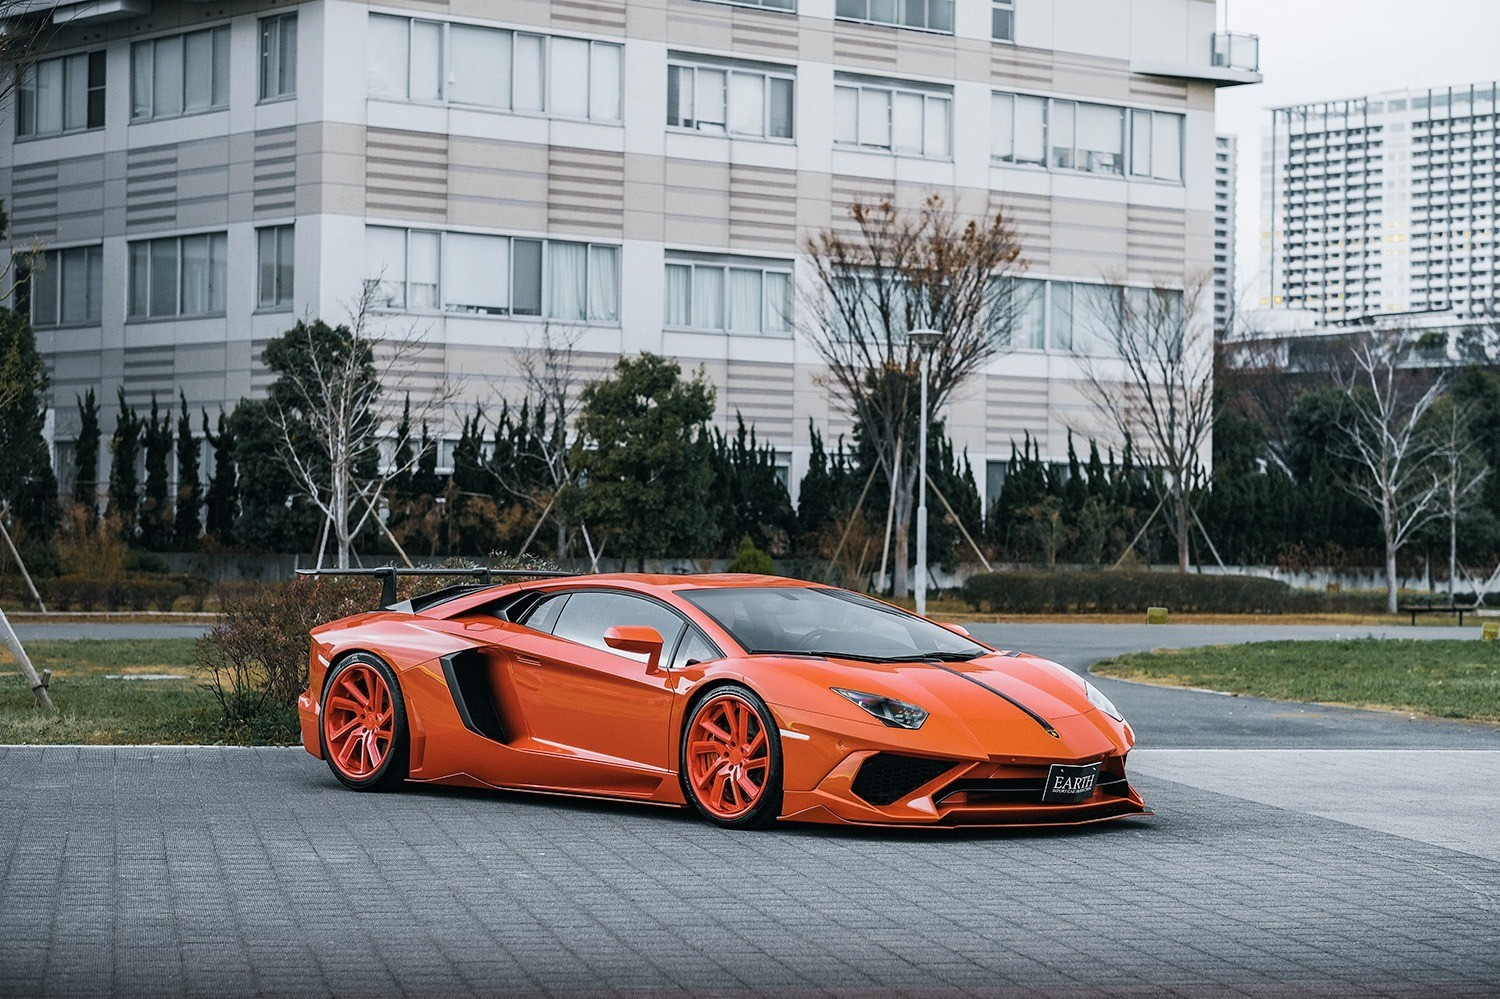 Lamborghini Aventador on LC-778